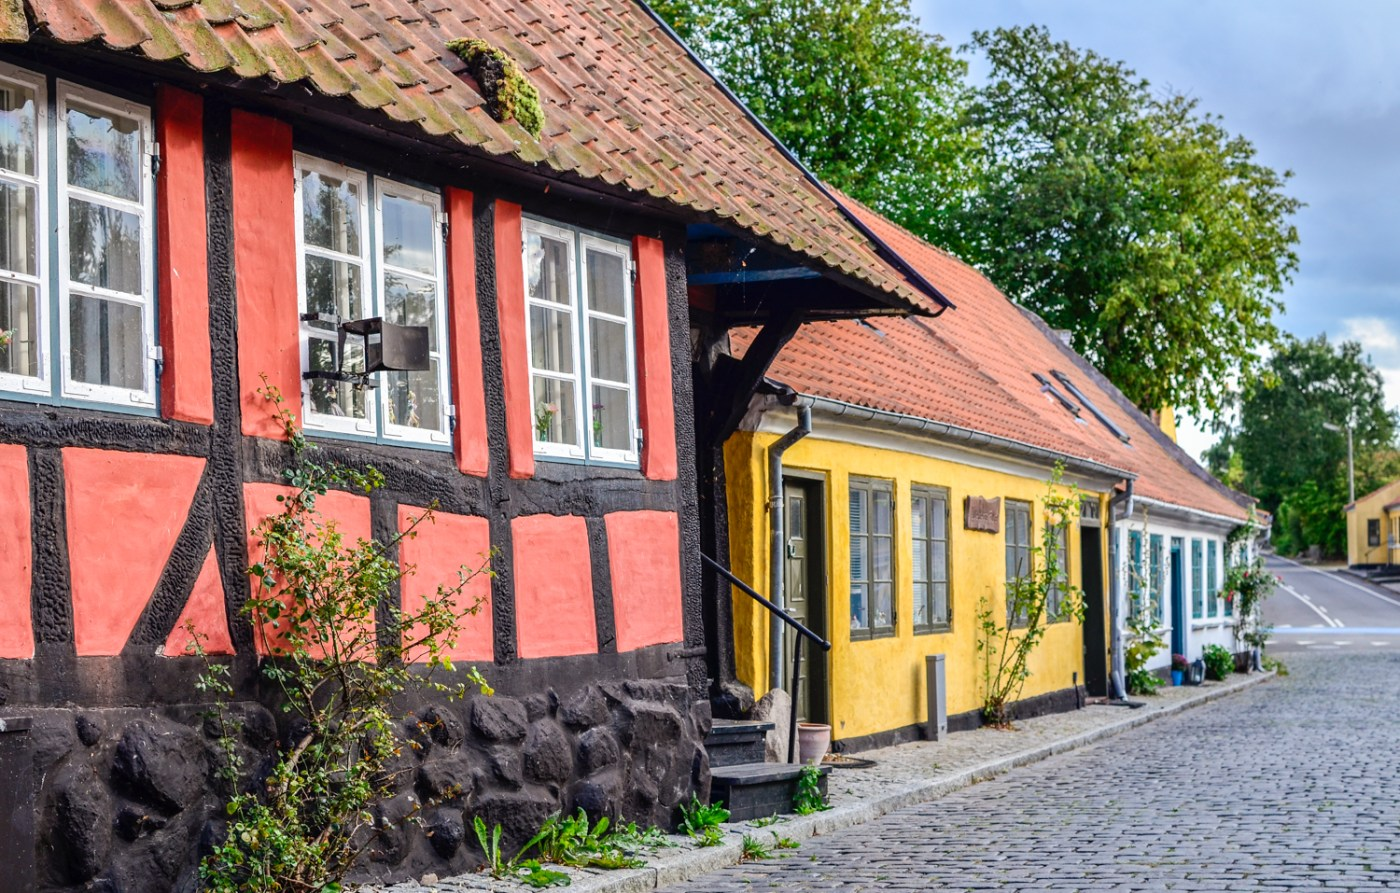 Denmark house city independentpeople